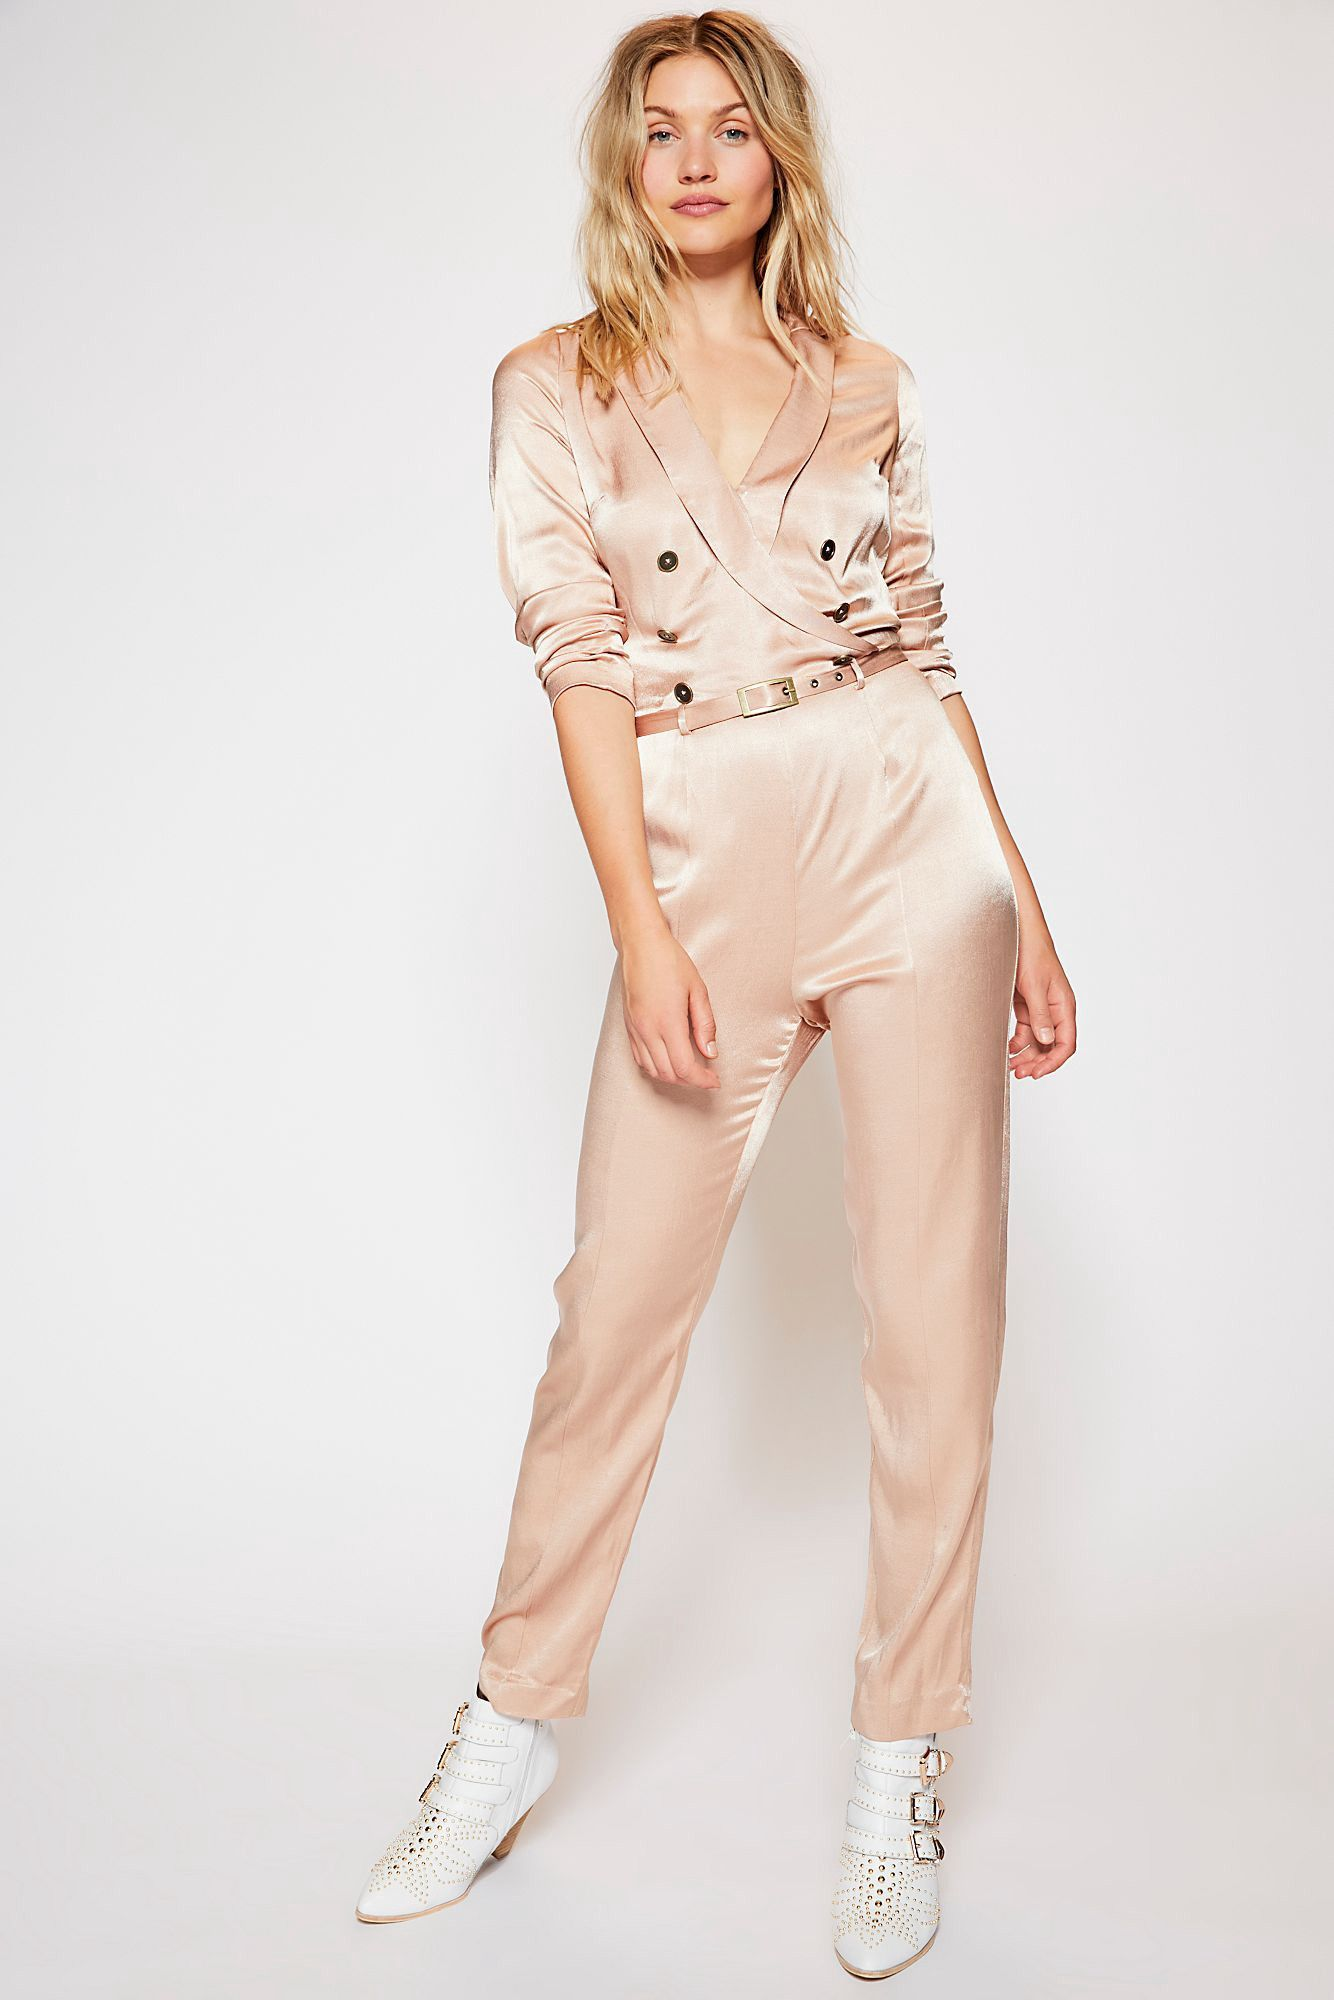 9cf5fb1a269 Free People I Am Woman Jumpsuit - Wilderness 12